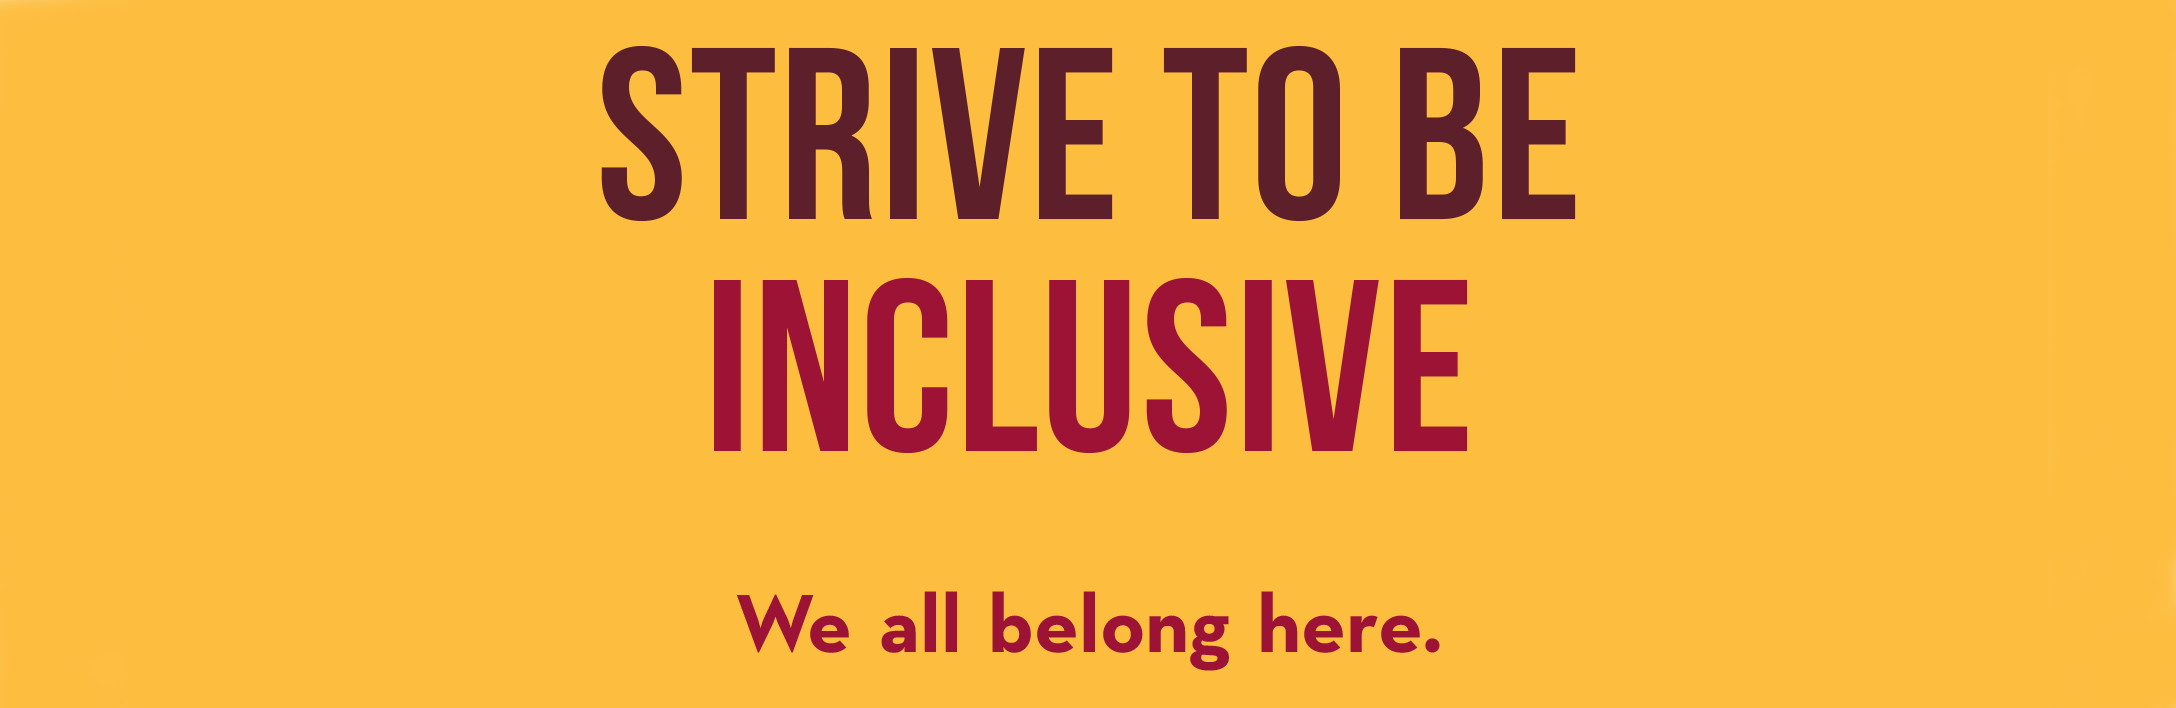 strive to be inclusive